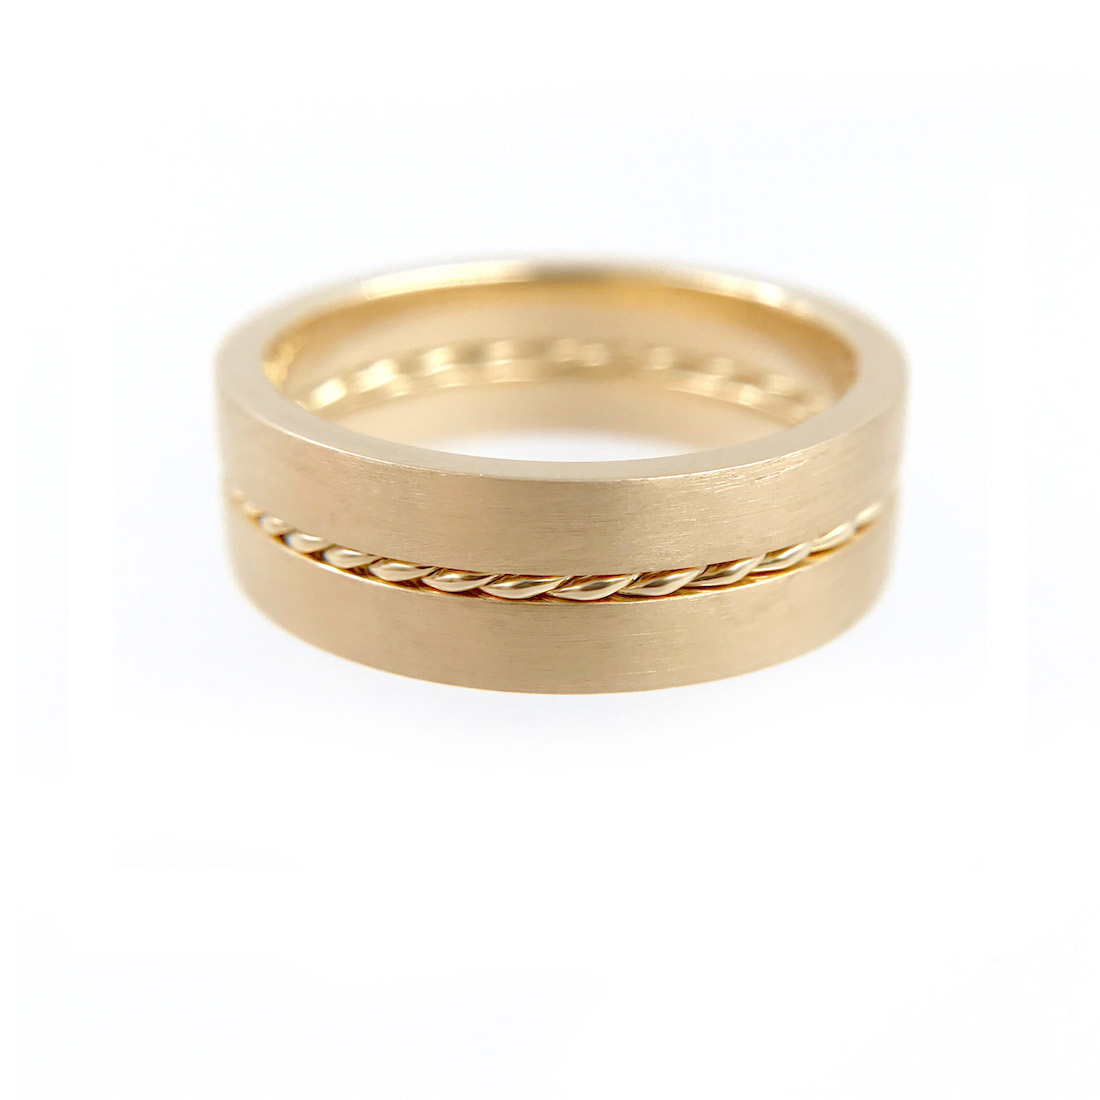 51-JeweLyrie-Signature-Gold-Slim-Twist-0.8mm-band-Ring-Guard-Spacer_8006